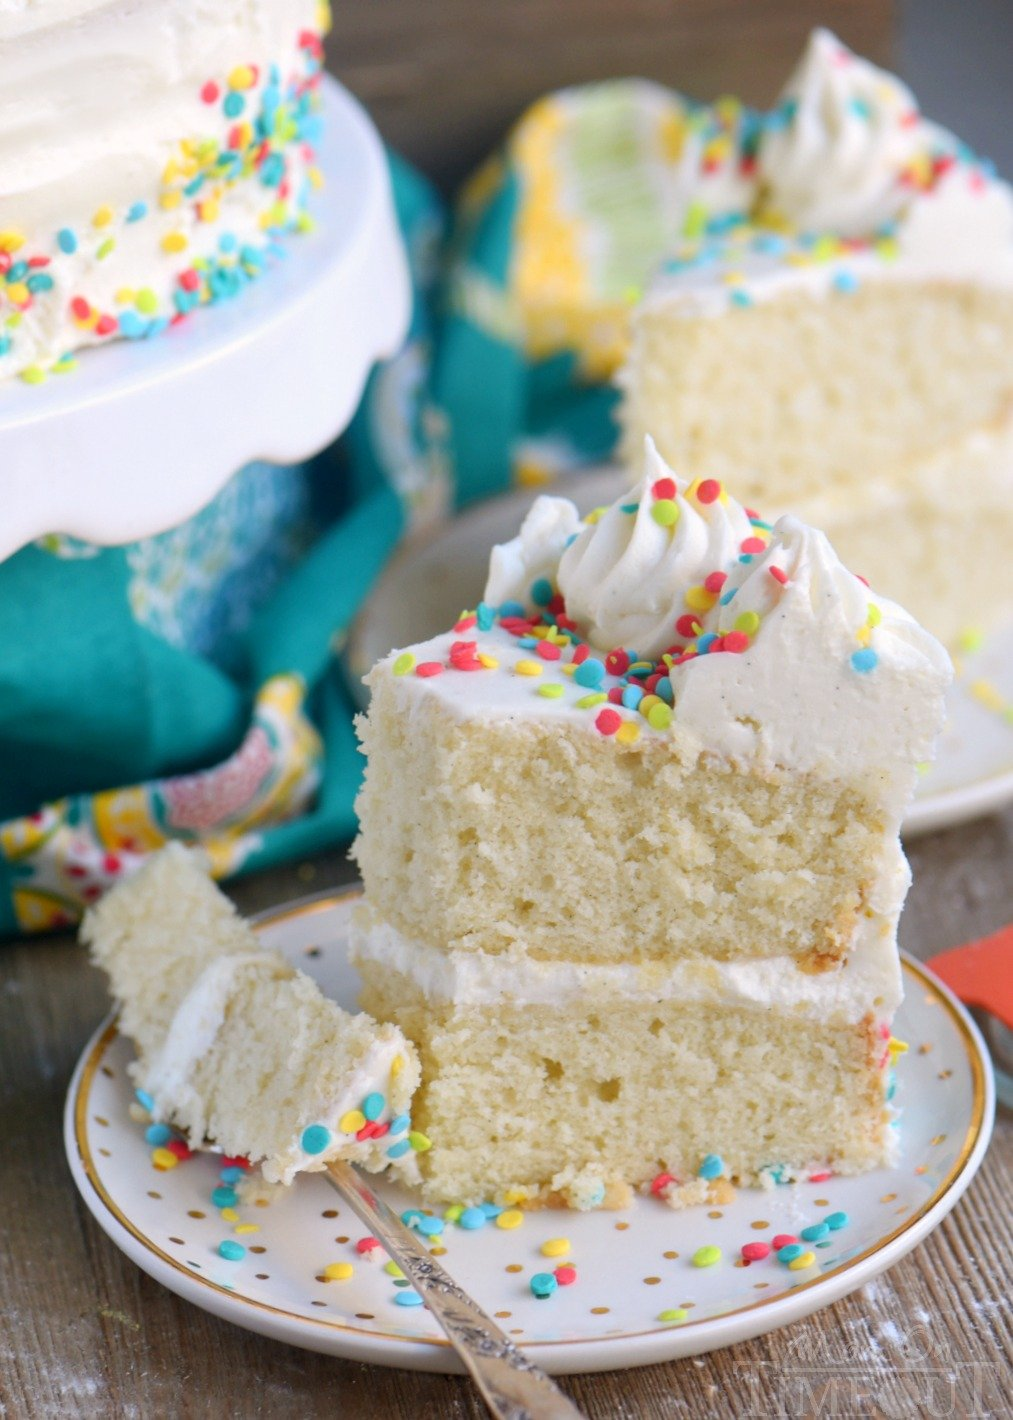 This Very Vanilla Cake is bursting with sweet vanilla flavor! Top with fresh fruit, sprinkles or white chocolate curls for a beautiful finish! Can be made dairy-free too! // Mom On Timeout